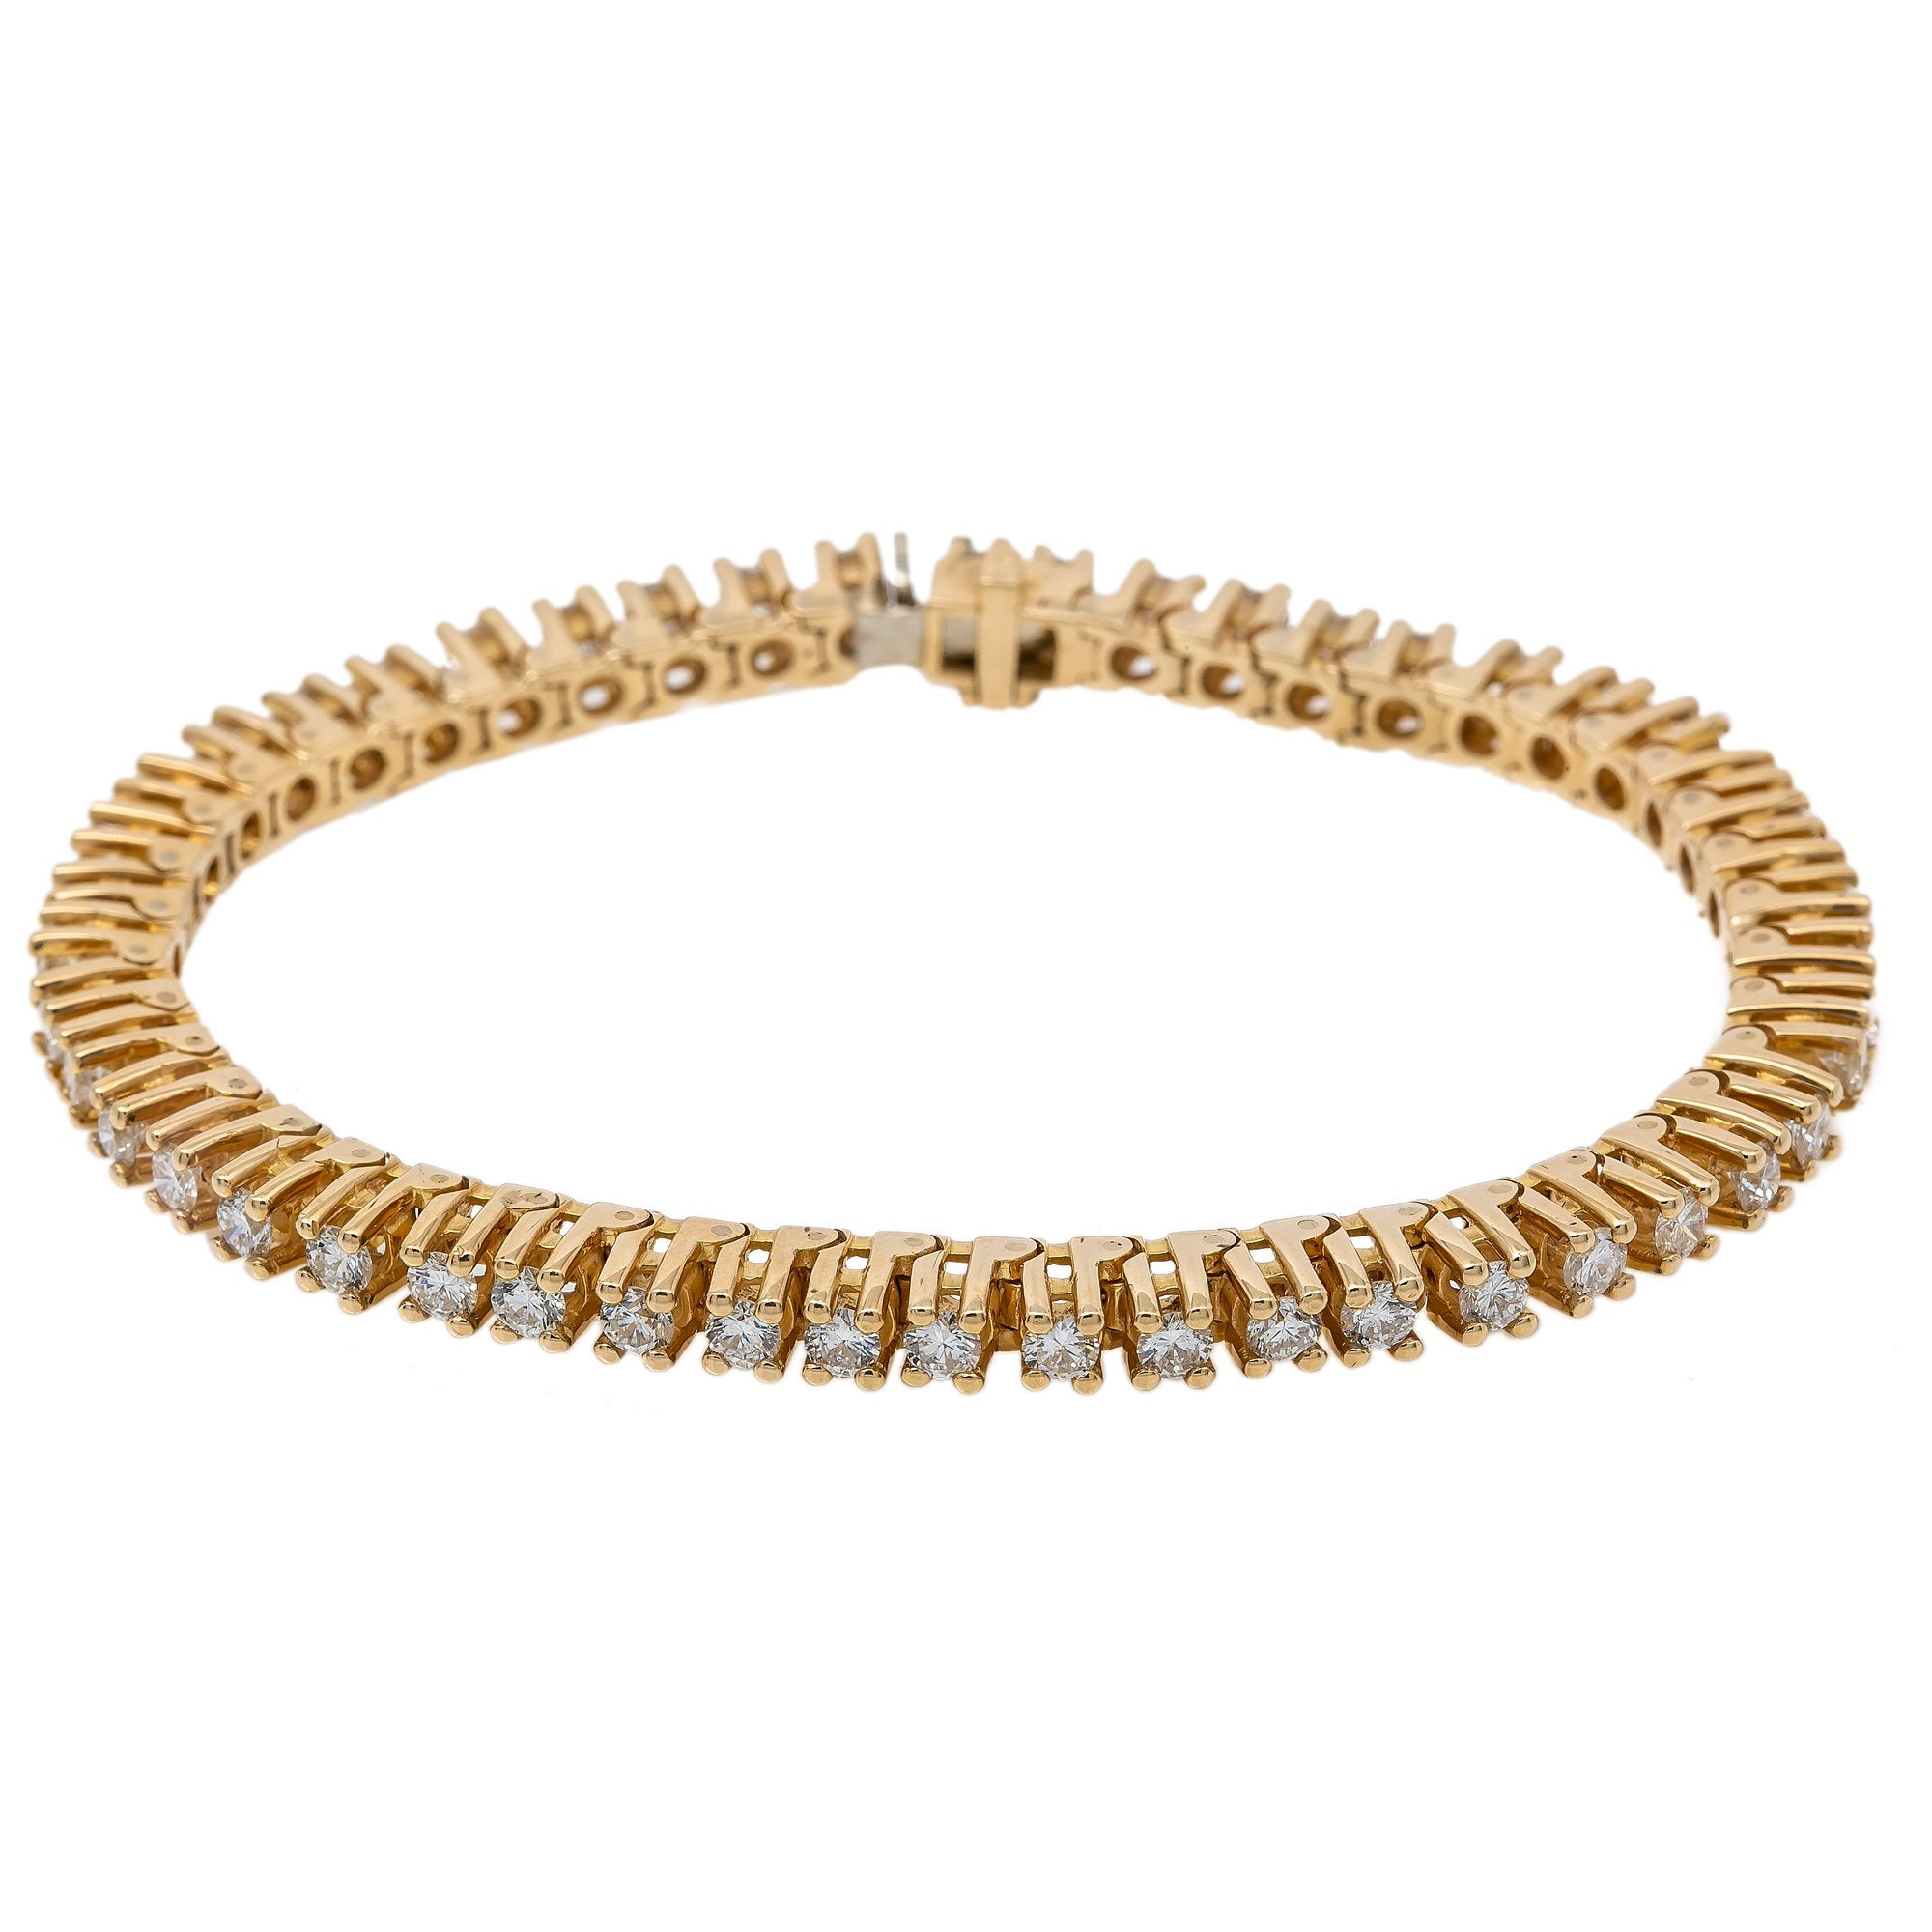 14K YELLOW GOLD WOMEN'S BRACELET WITH 6.50 CT DIAMONDS